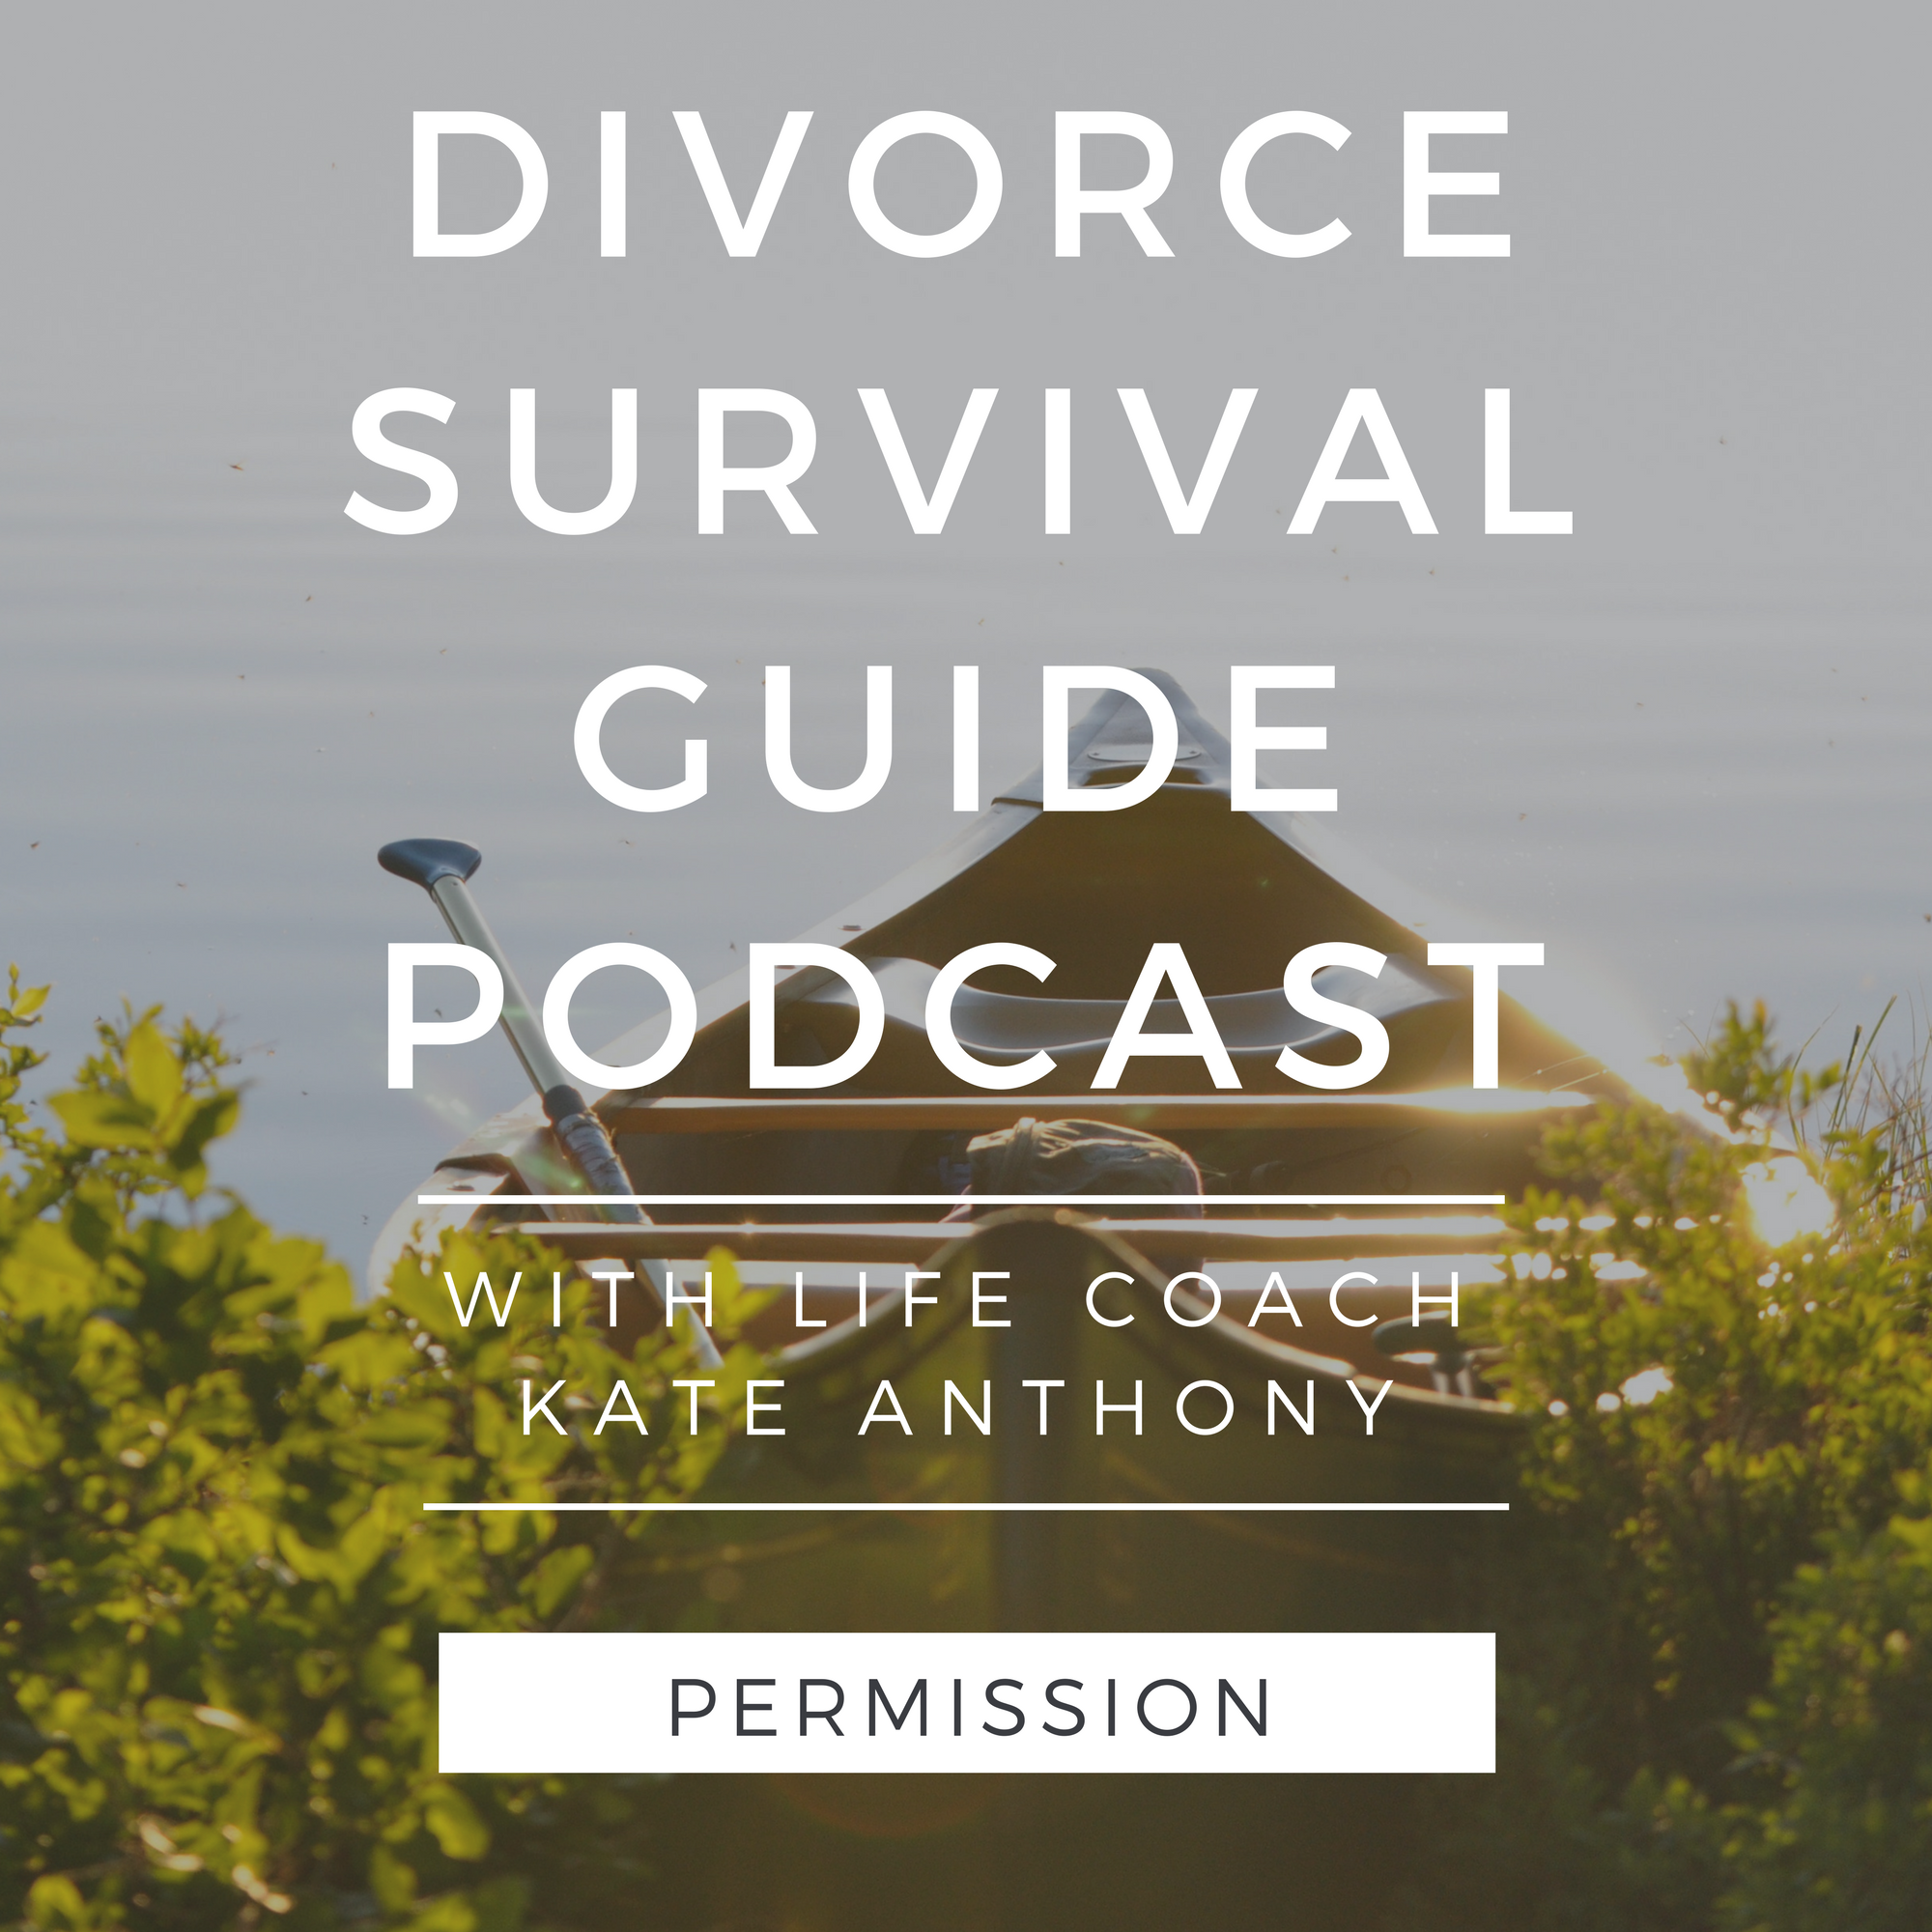 The Divorce Survival Guide Podcast - You are allowed to leave